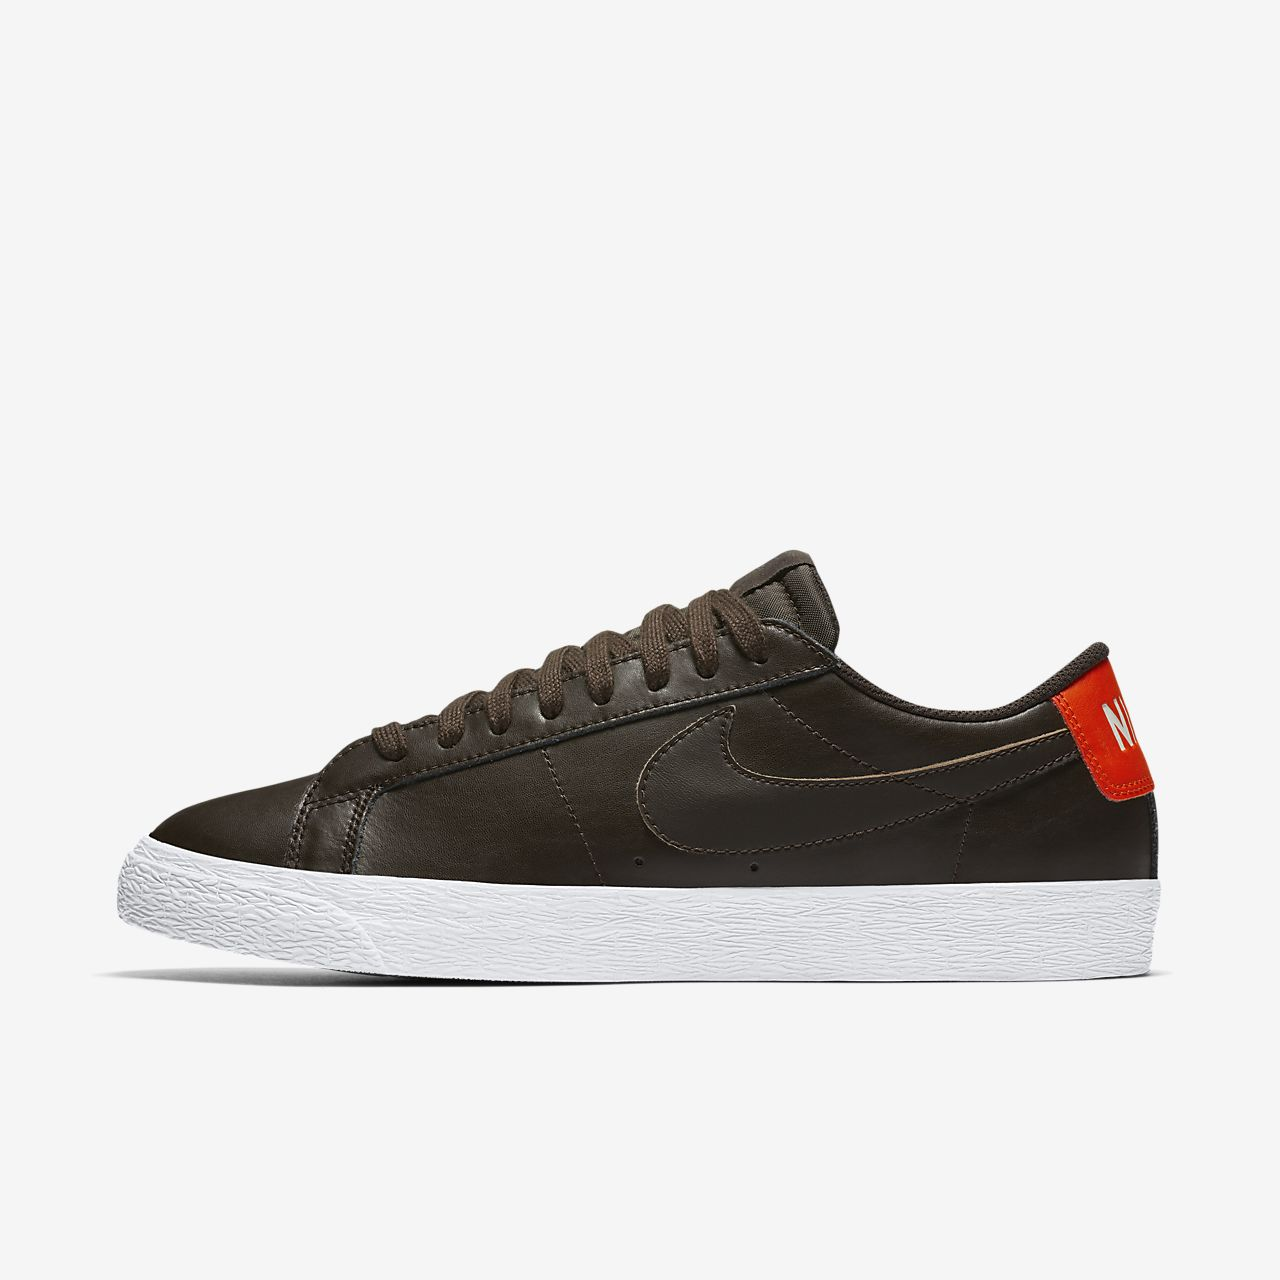 wholesale dealer 210e6 ad574 Nike SB Blazer Zoom Low Men's Skateboarding Shoe